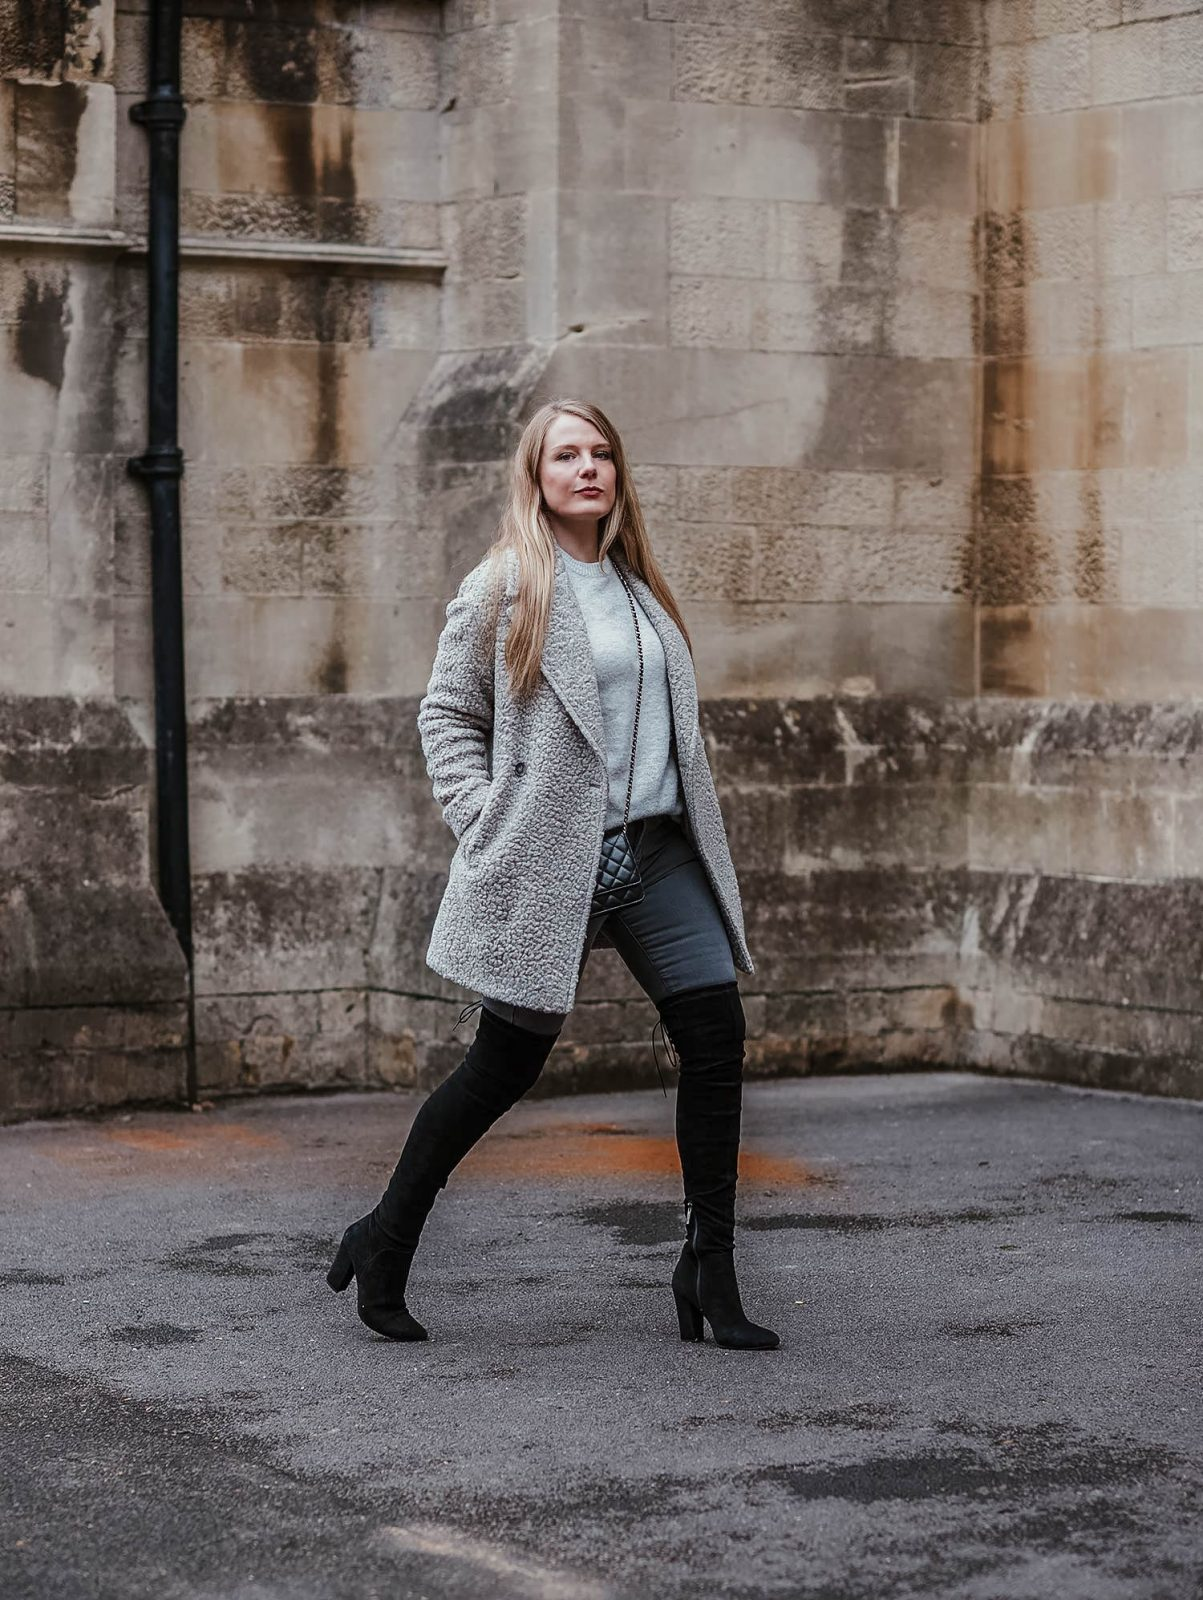 The Scarlet Teddy Coat With Boots